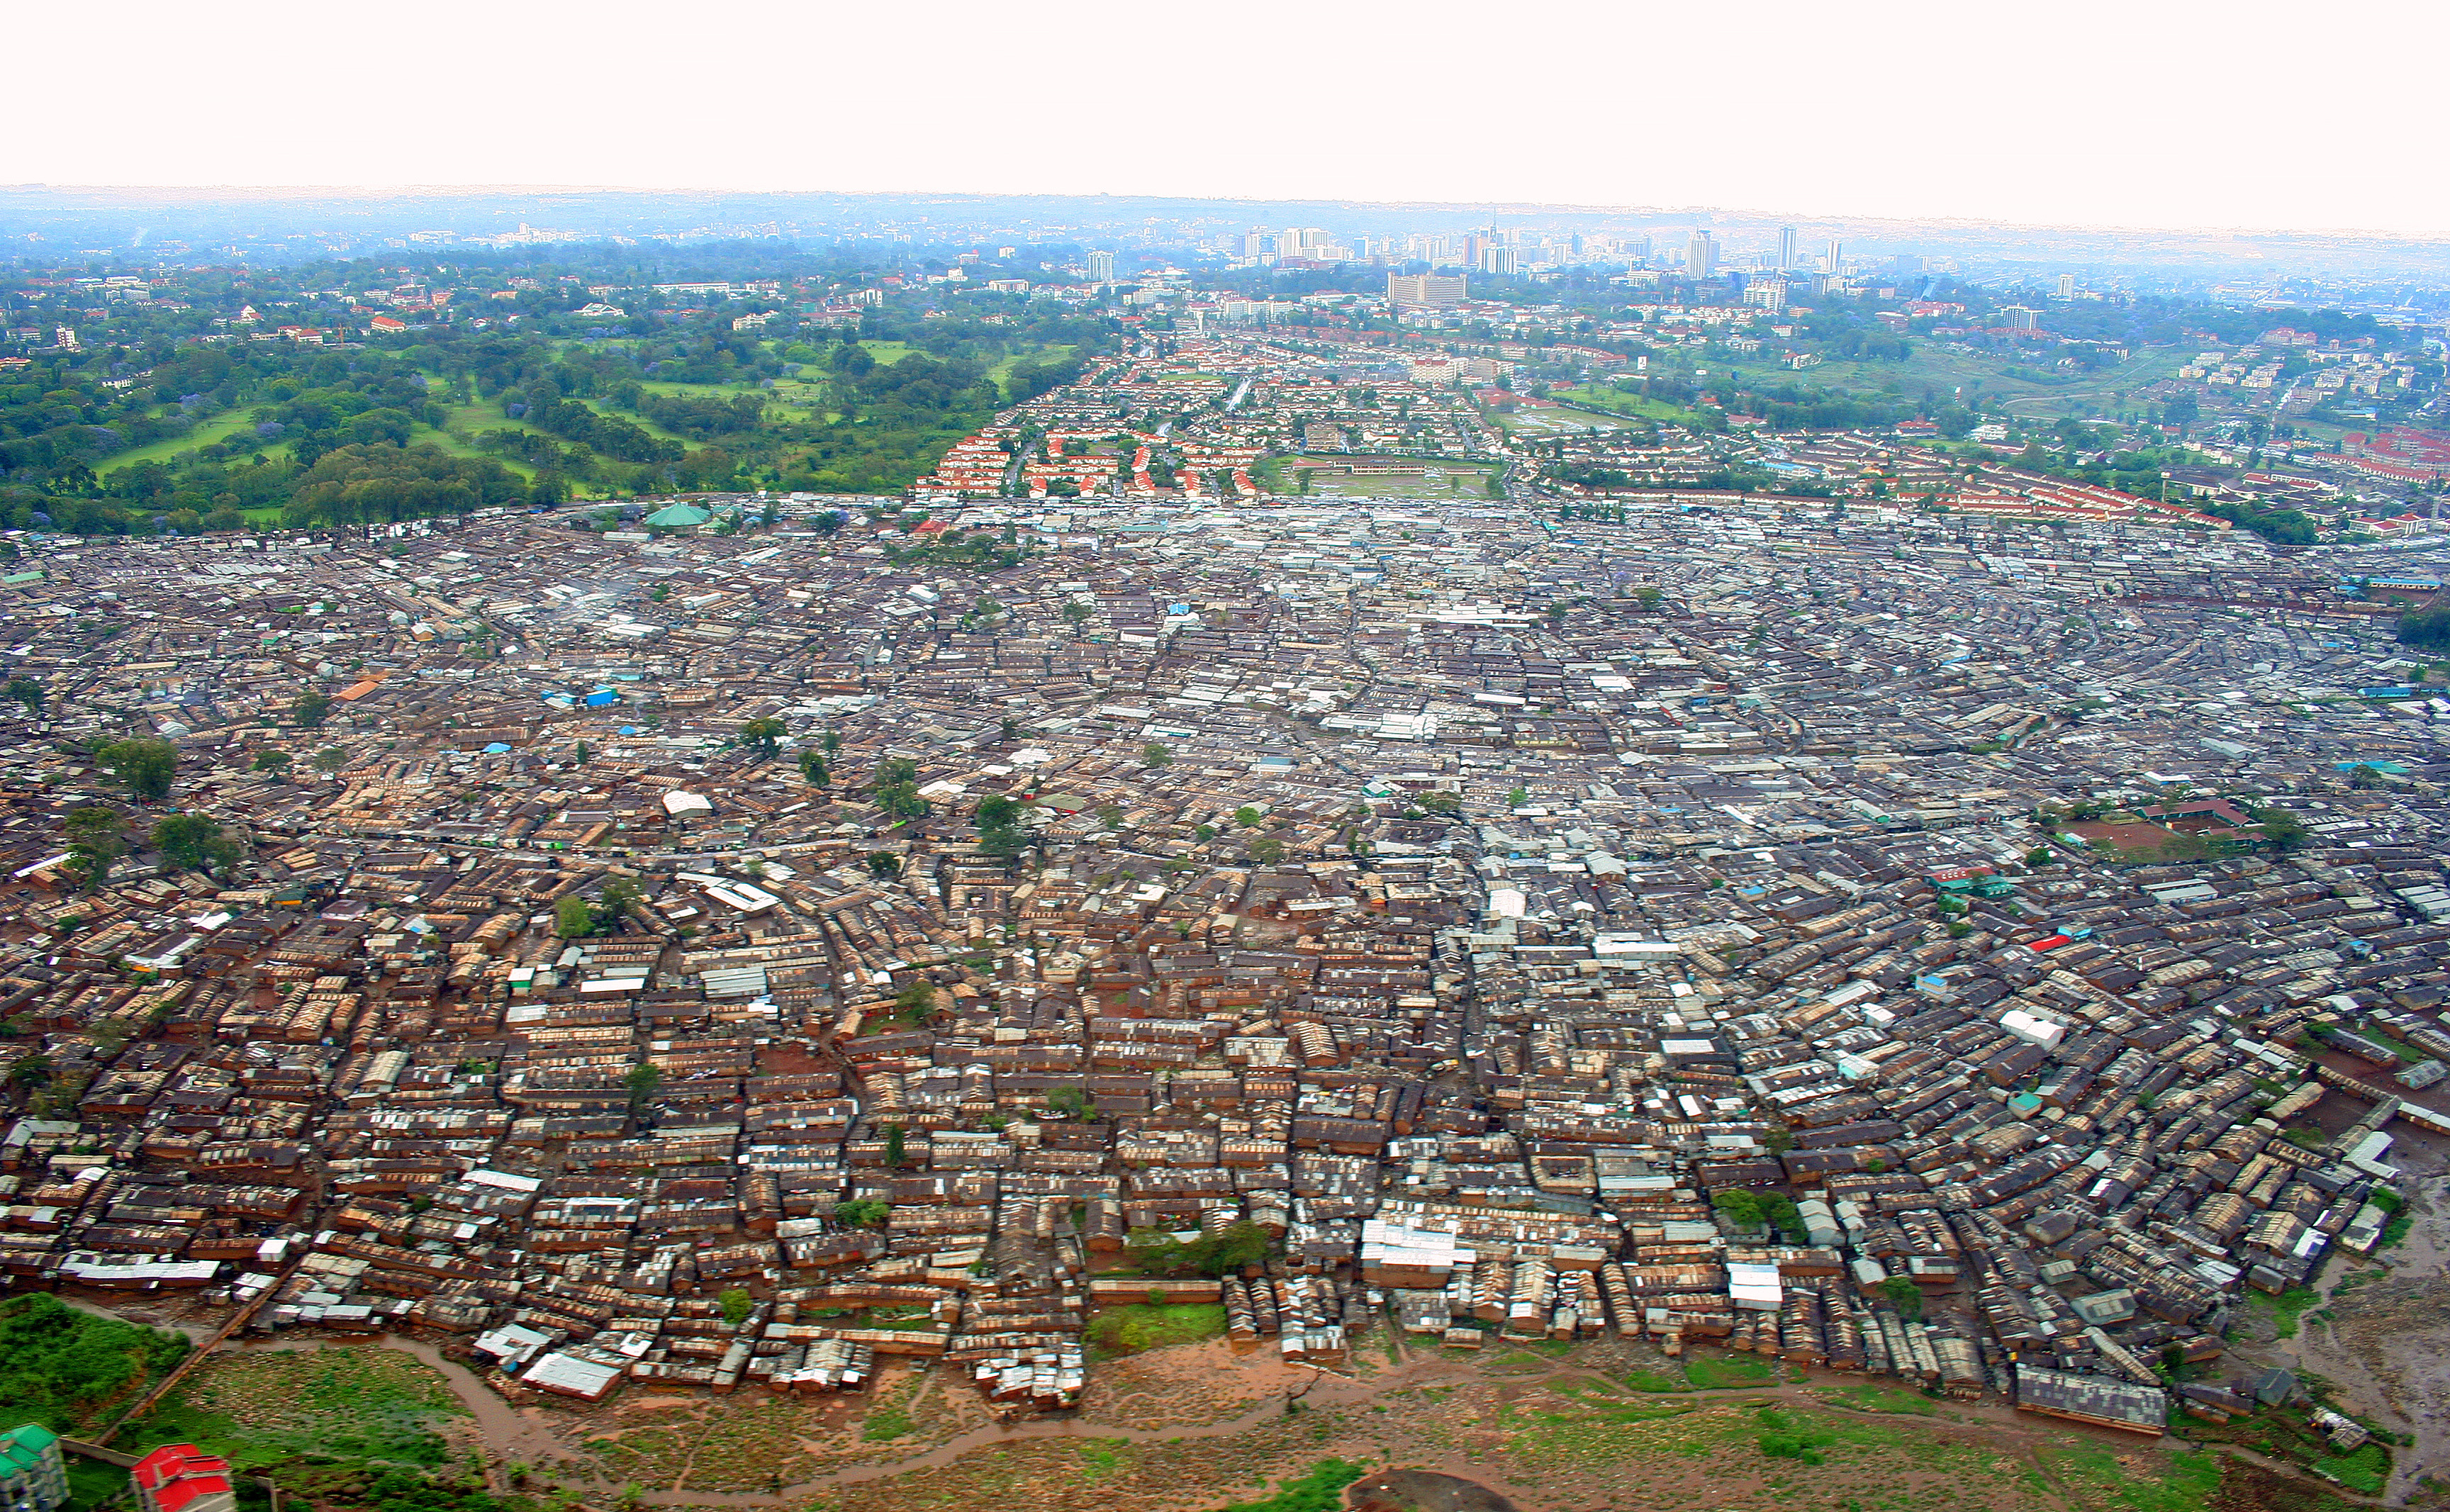 http://upload.wikimedia.org/wikipedia/commons/a/a2/Nairobi_Kibera_04.JPG